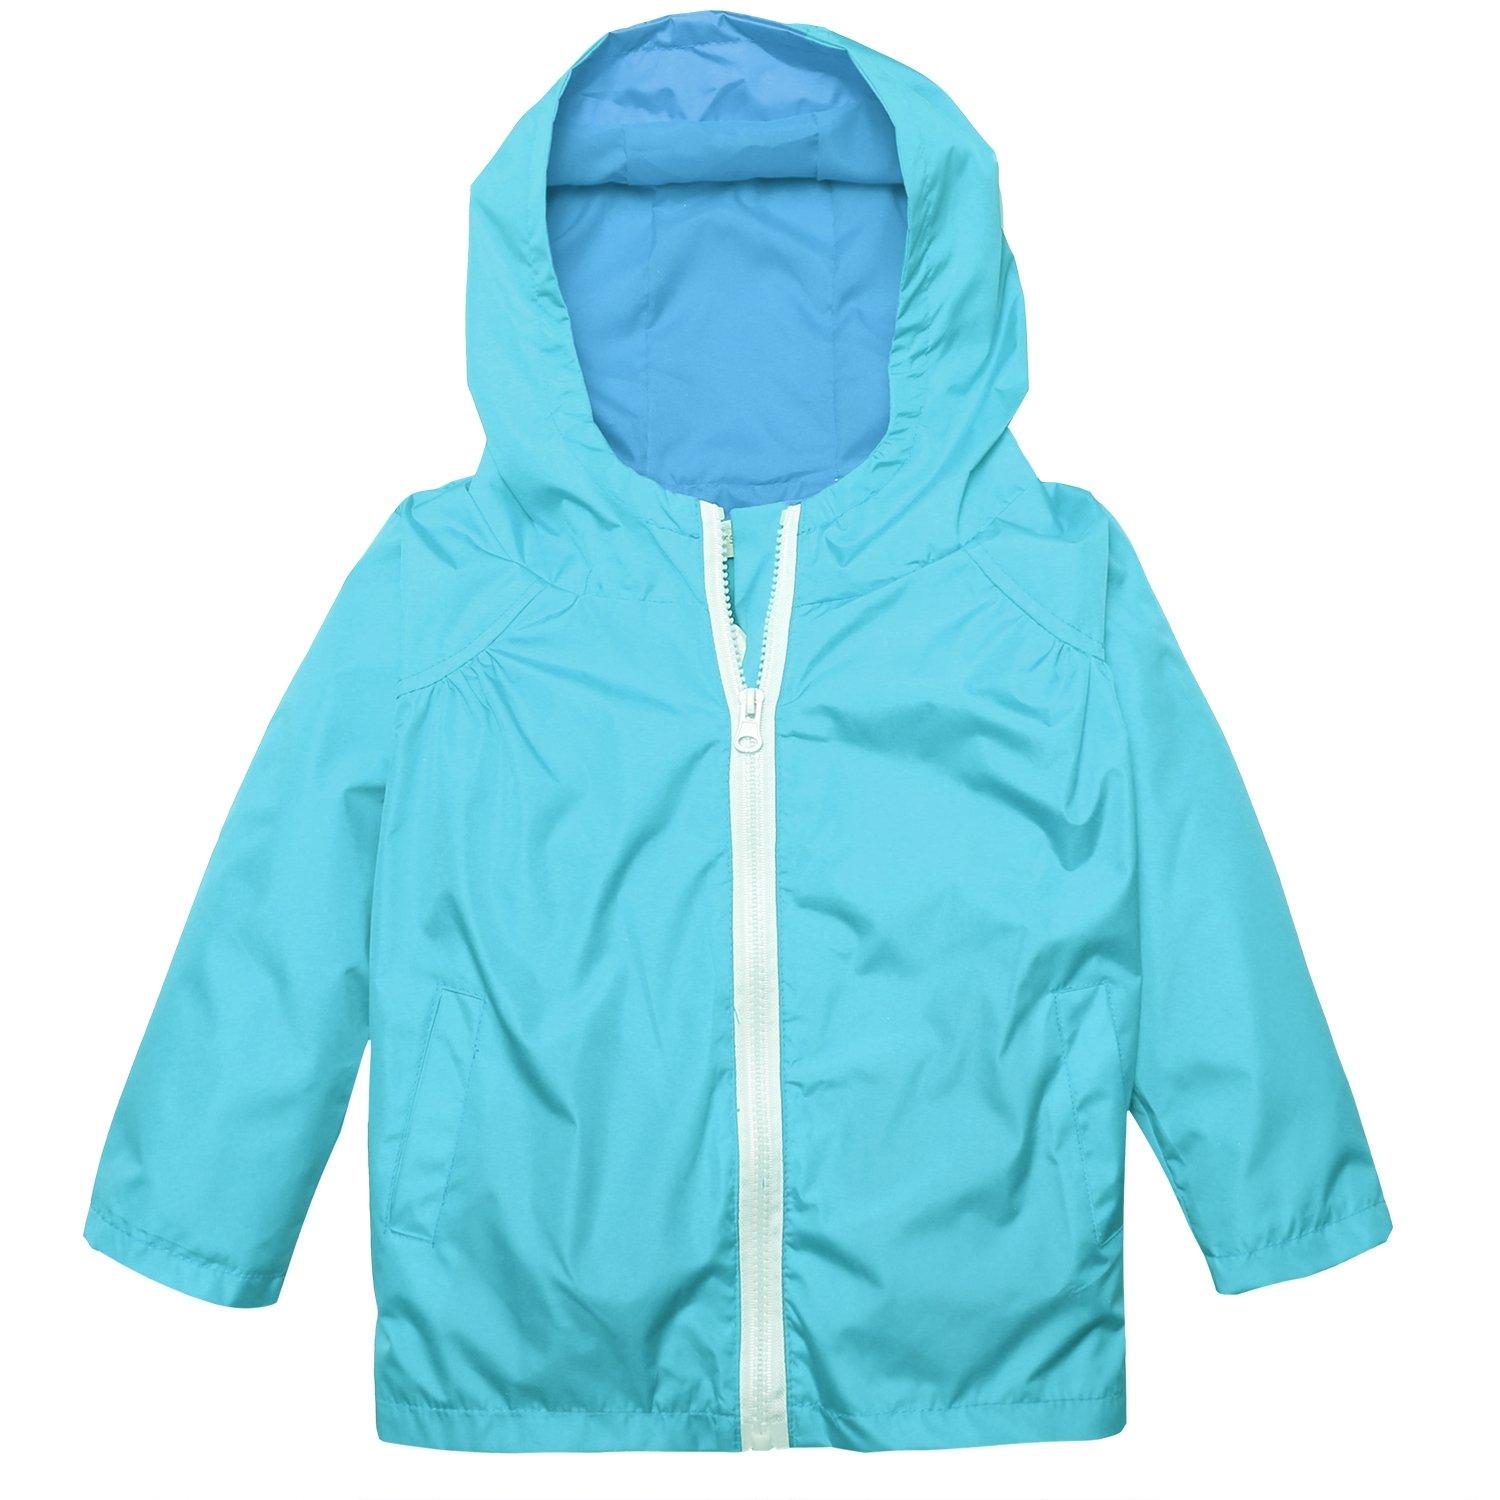 Arshiner Little Kid Waterproof Lightwight Jacket Outwear Raincoat with Hooded **AMM004995